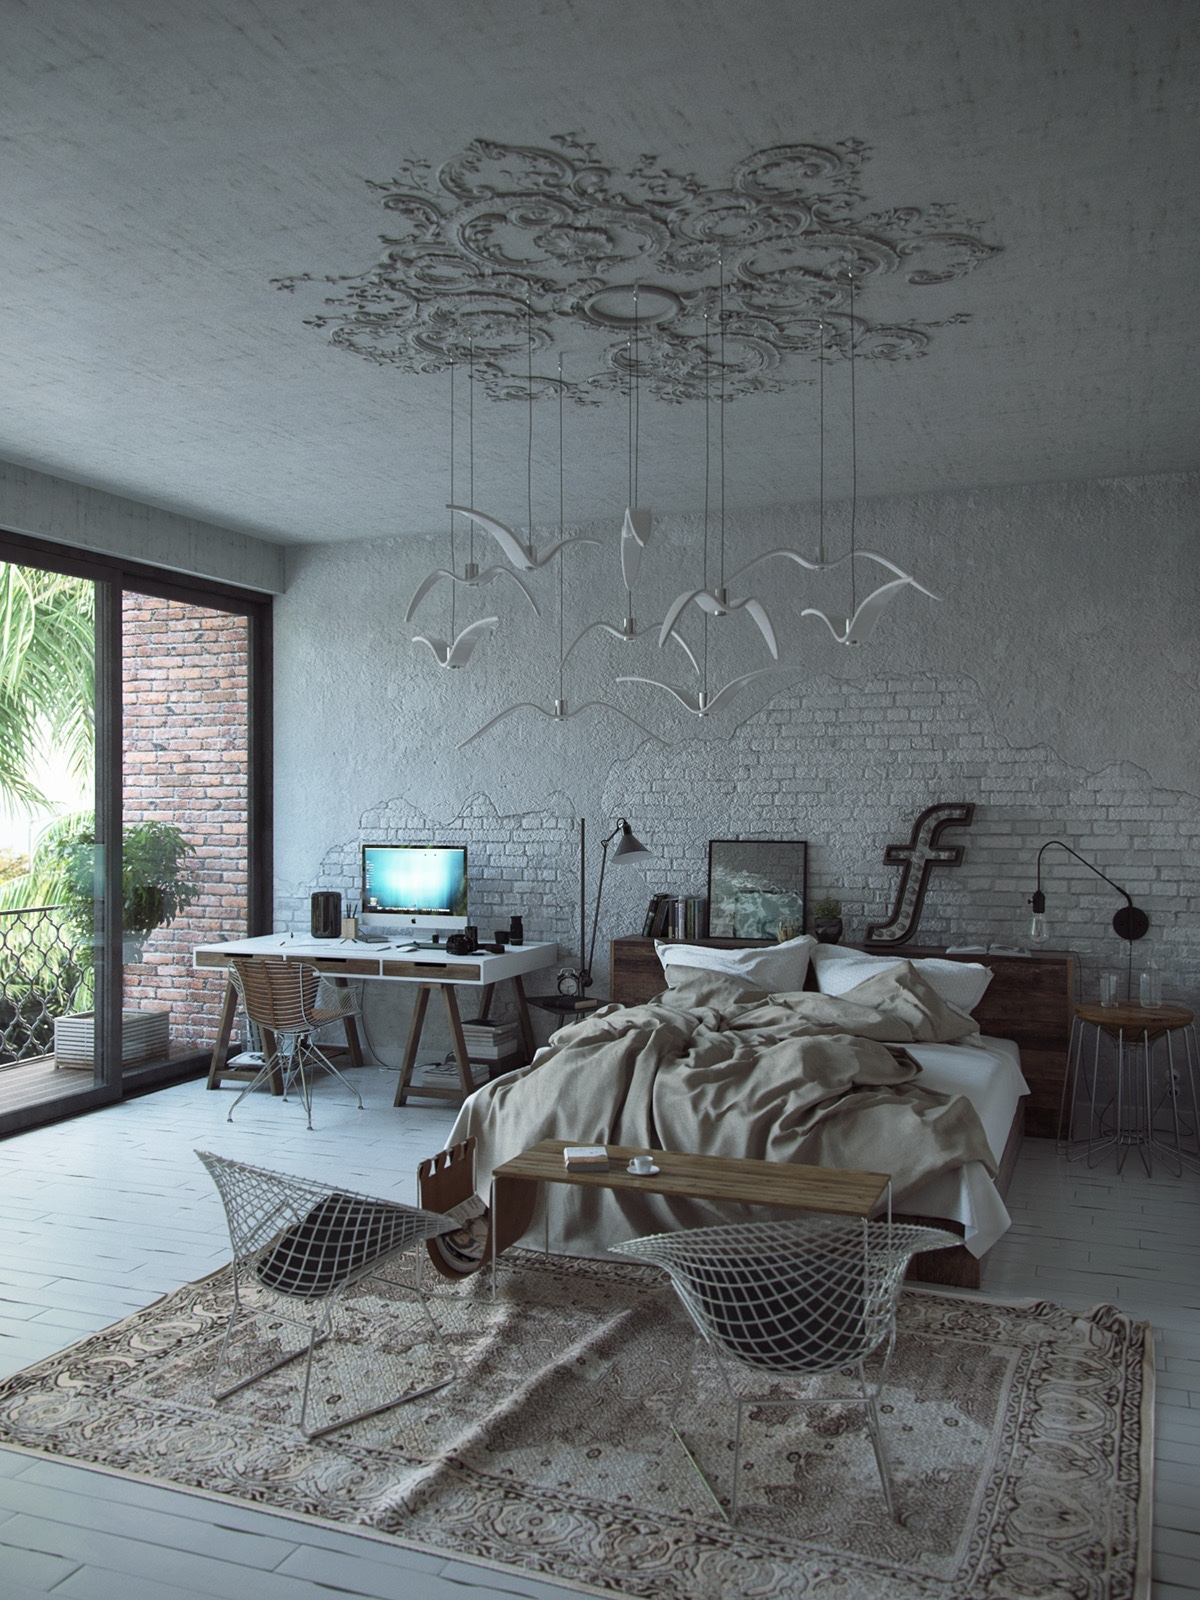 A minimalistic bedroom is a perfect place for artistic overtones. This almost-industrial room exposes brick walls and bird motifs hanging from Victorian wall patterning. Wood mesh textures and an italic 'f' bring modernity.